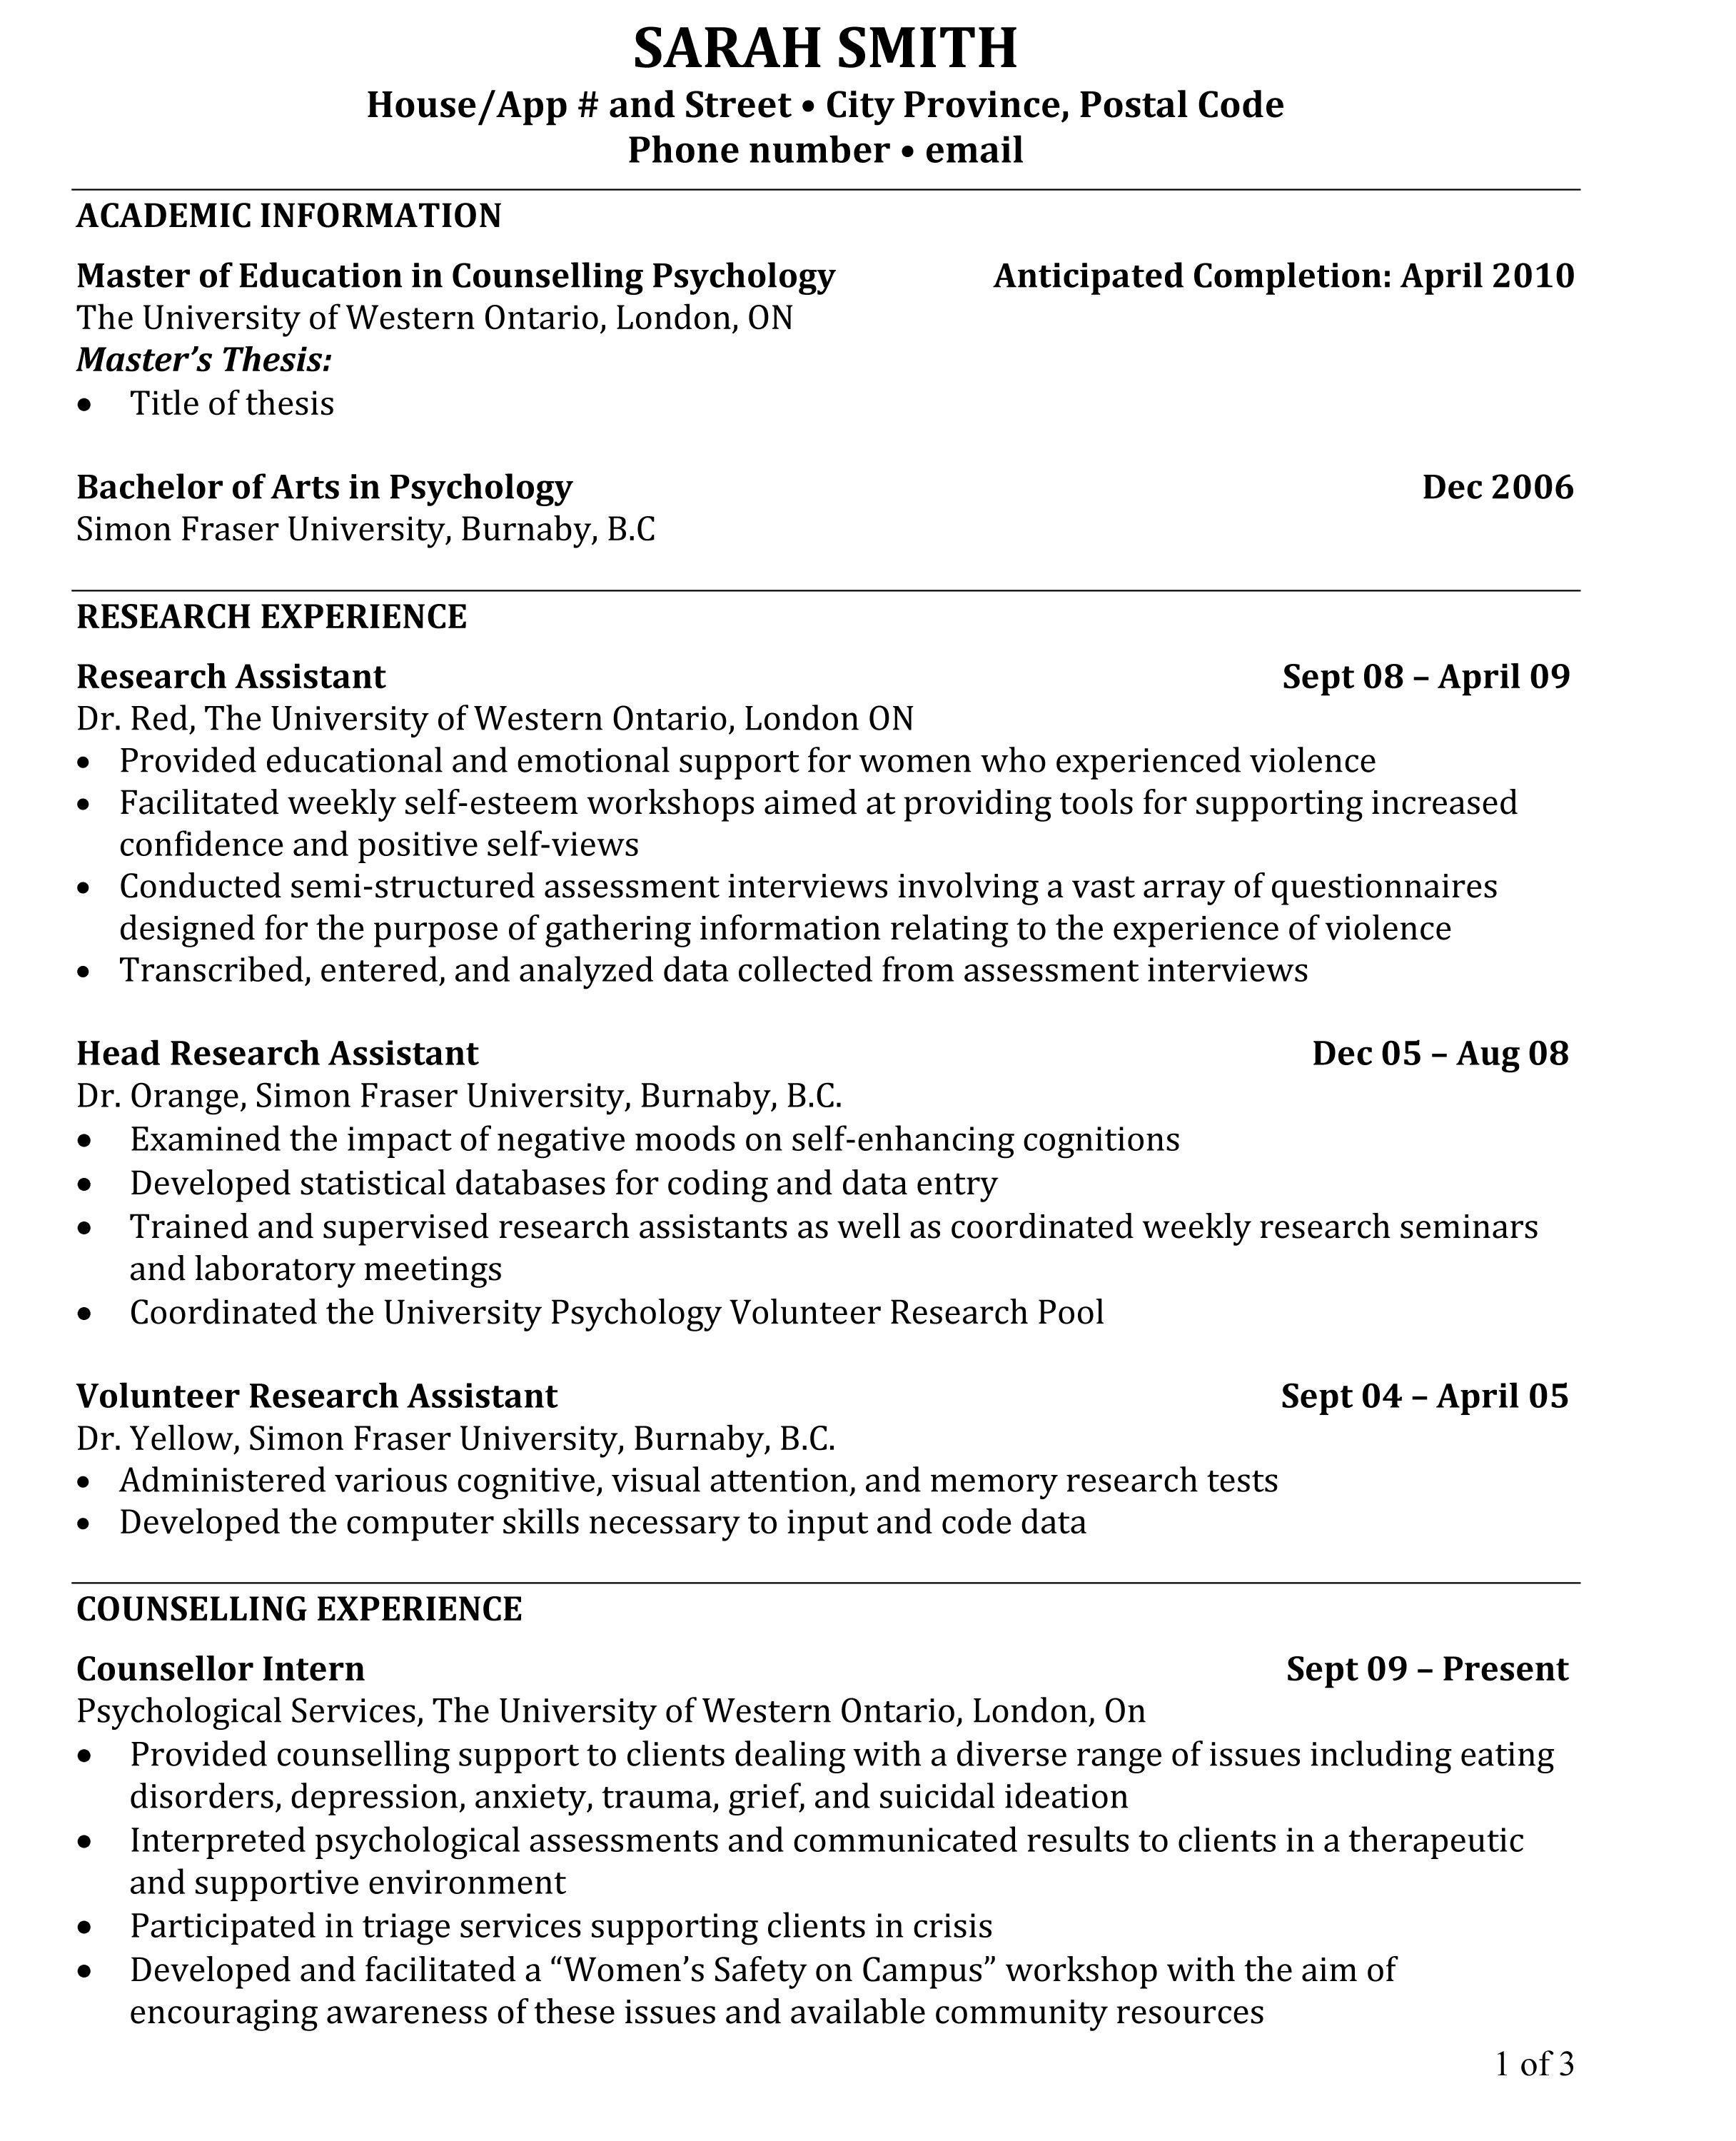 Graduate Student Resume Samples Phd Cv The Below Is Much Closer To My Experience Level